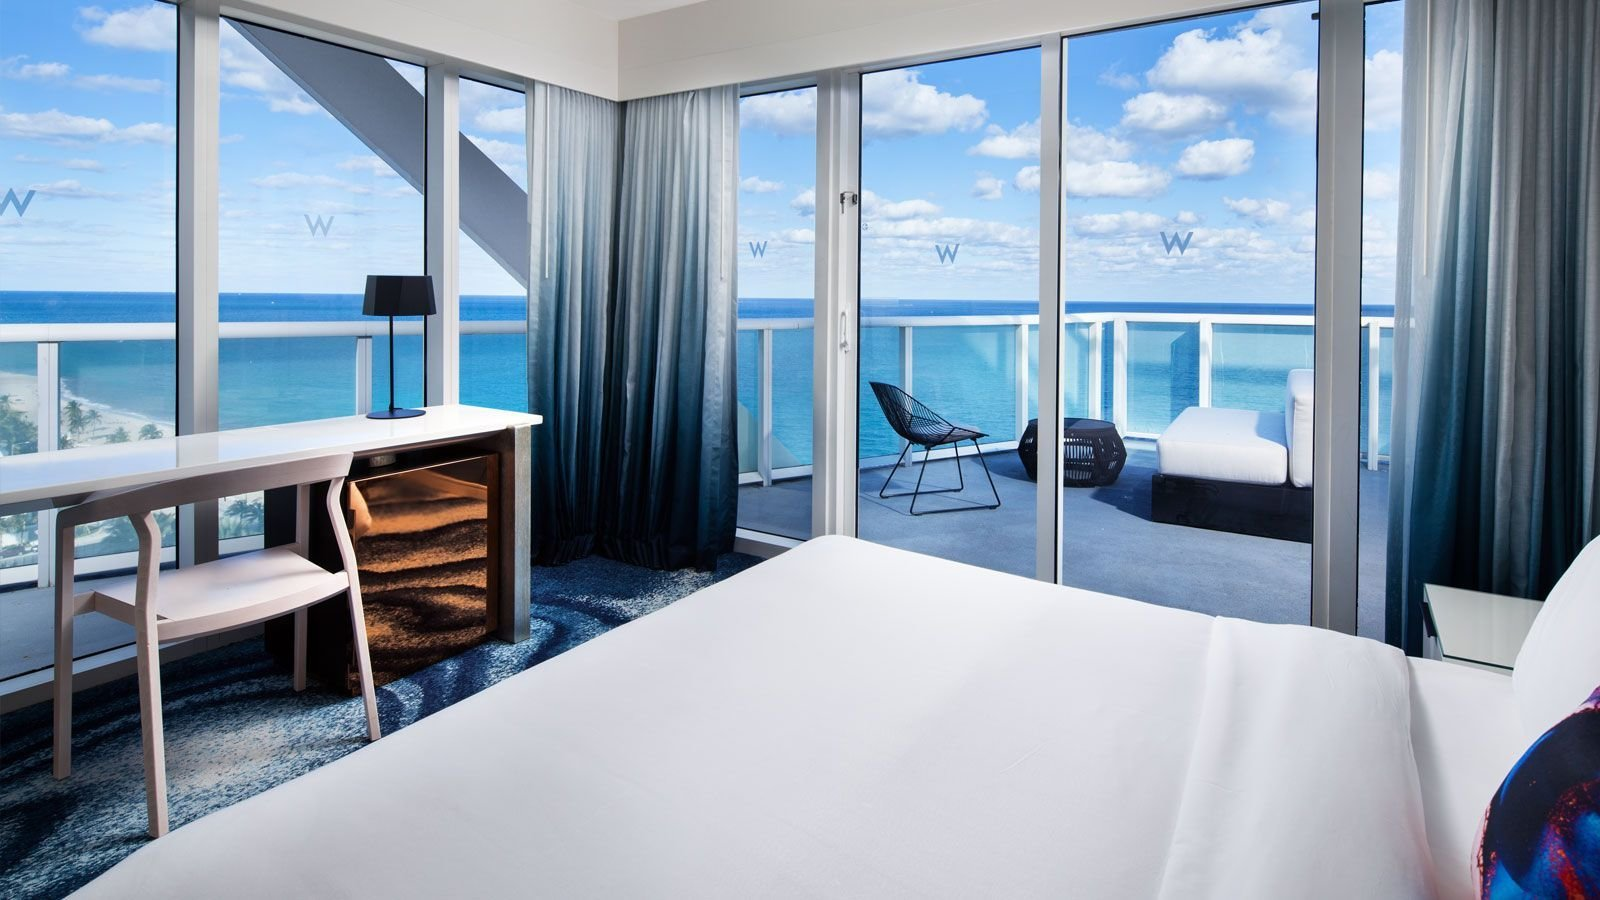 Best Fort Lauderdale Beach Hotels W Fort Lauderdale With Pictures